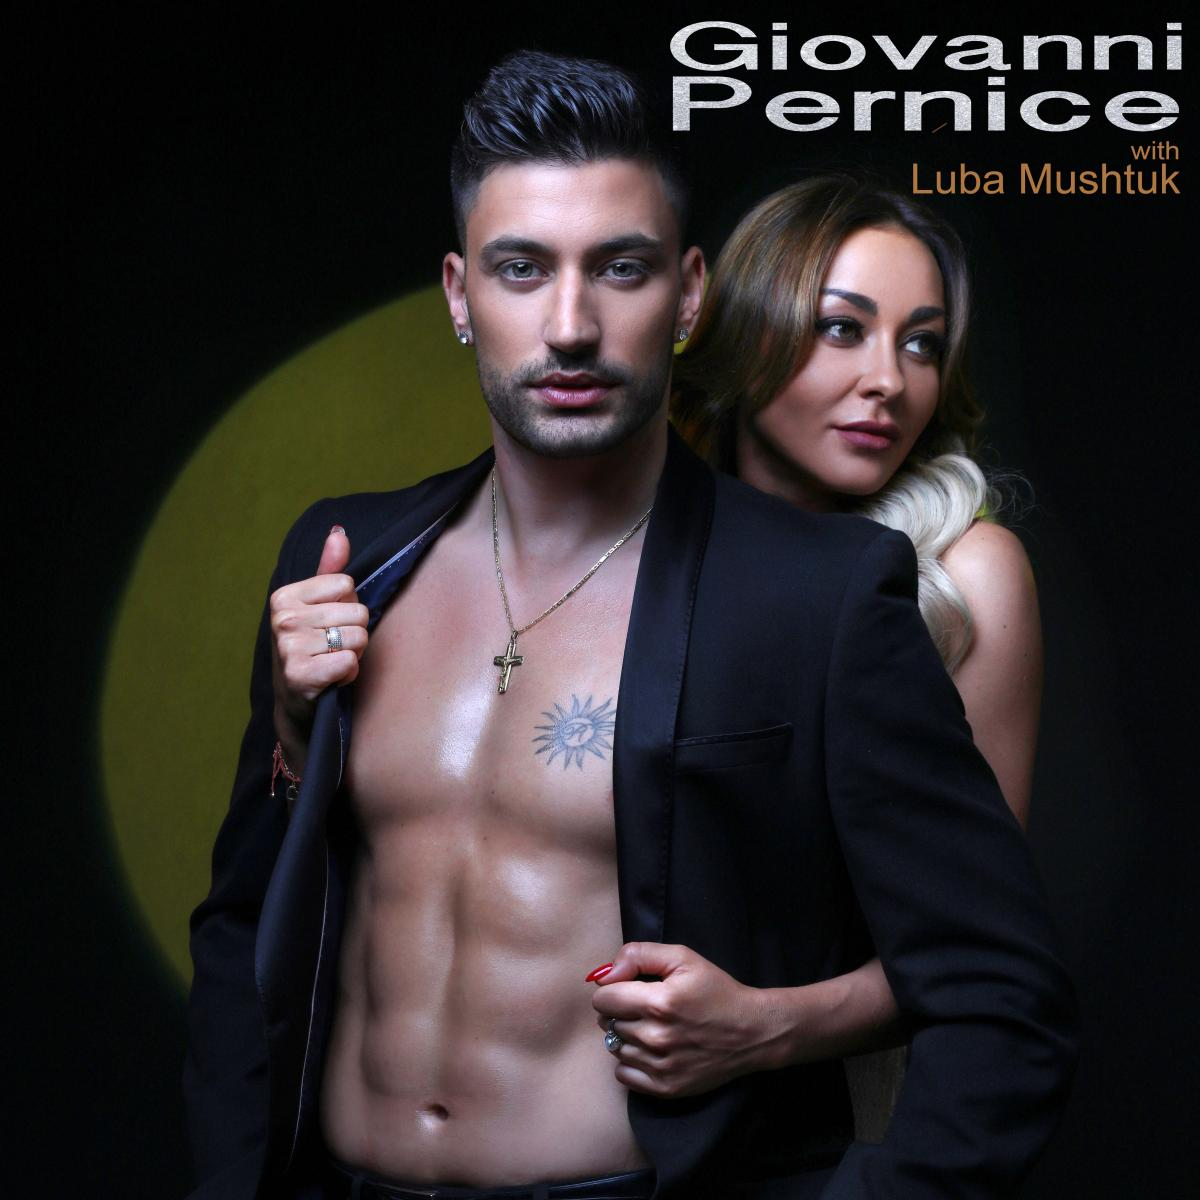 Giovanni Pernice Dance is Life 13th March 2019